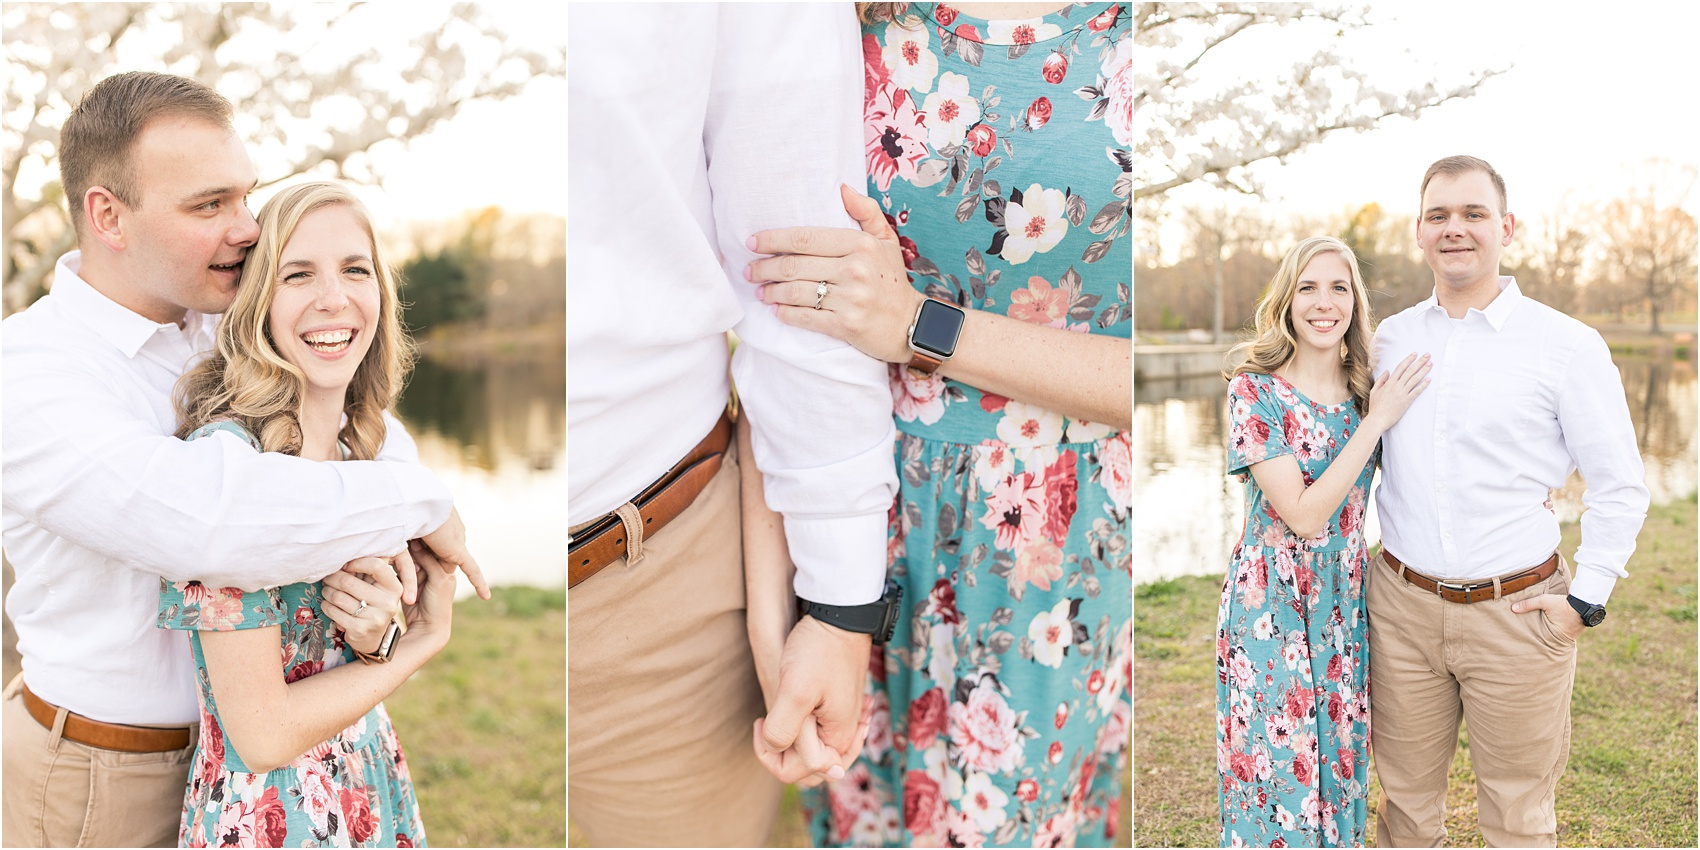 Savannah Eve Photography- Bradshaw-James Engagements-21.jpg